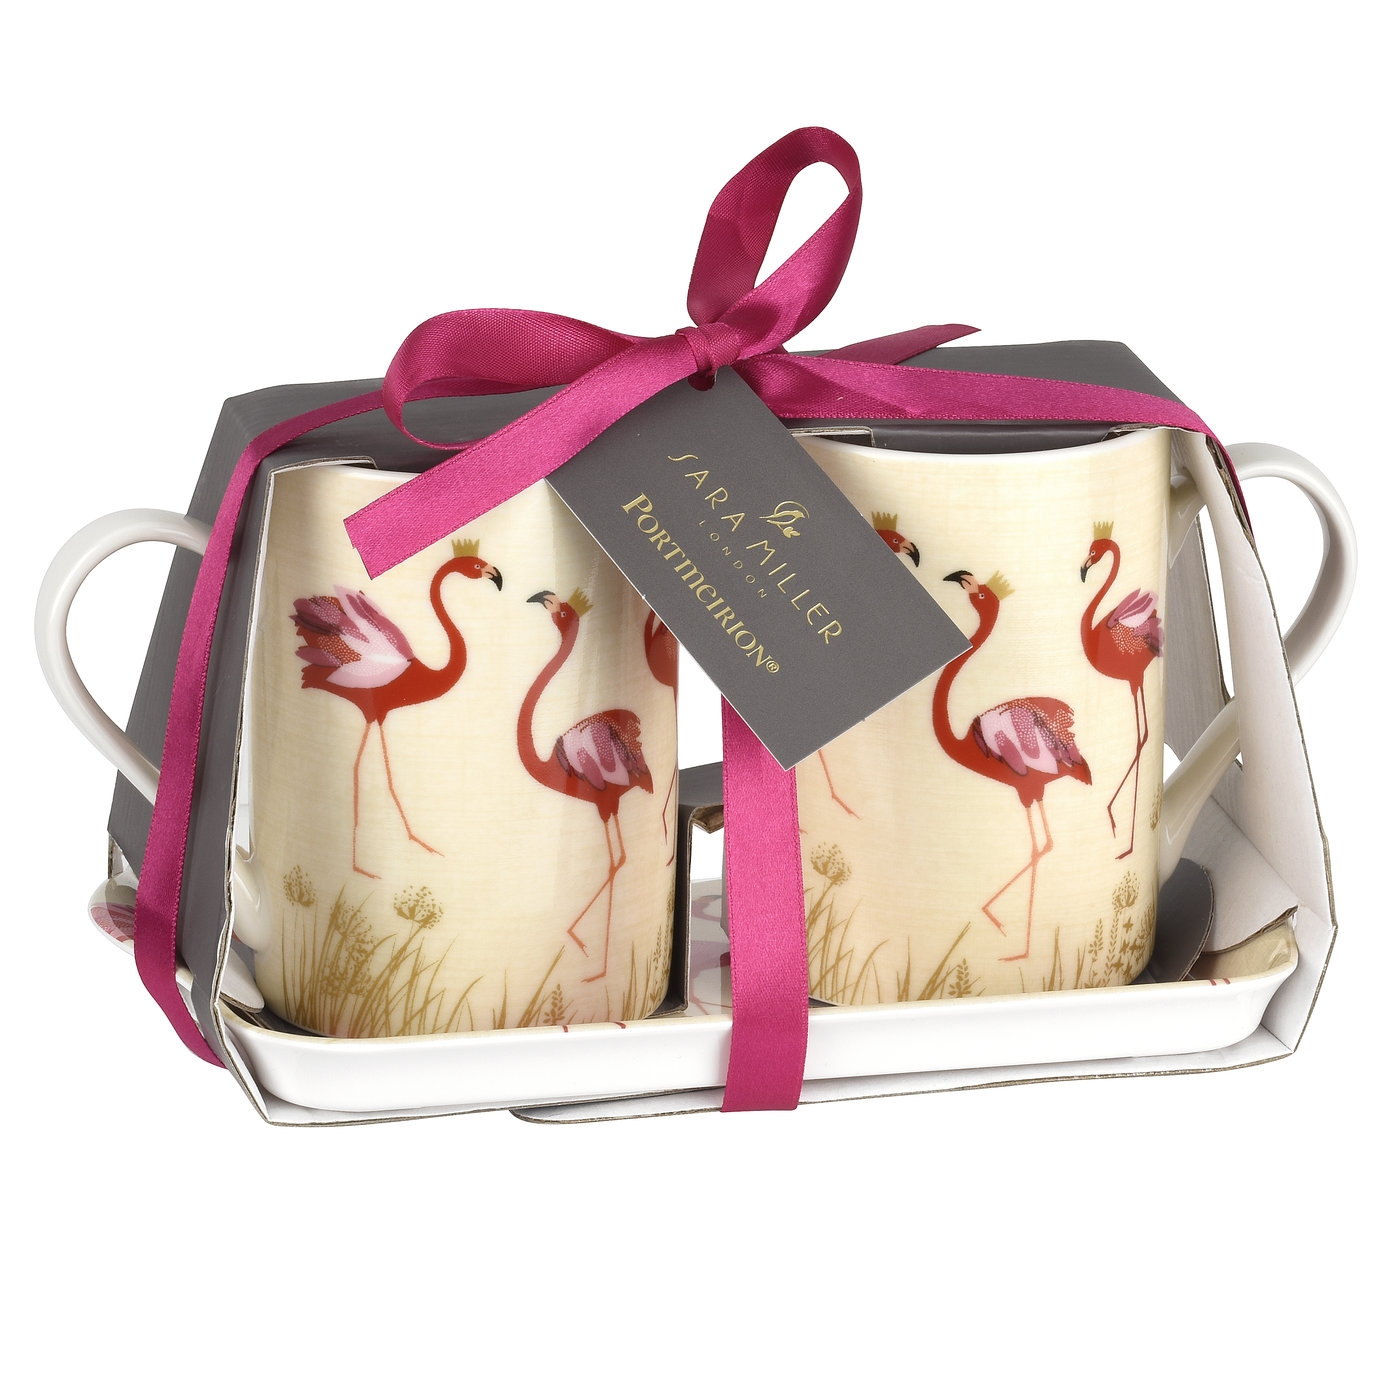 Sara Miller London for Pimpernel The Flamingo Collection Set of 2 Mugs and Tray image number 1